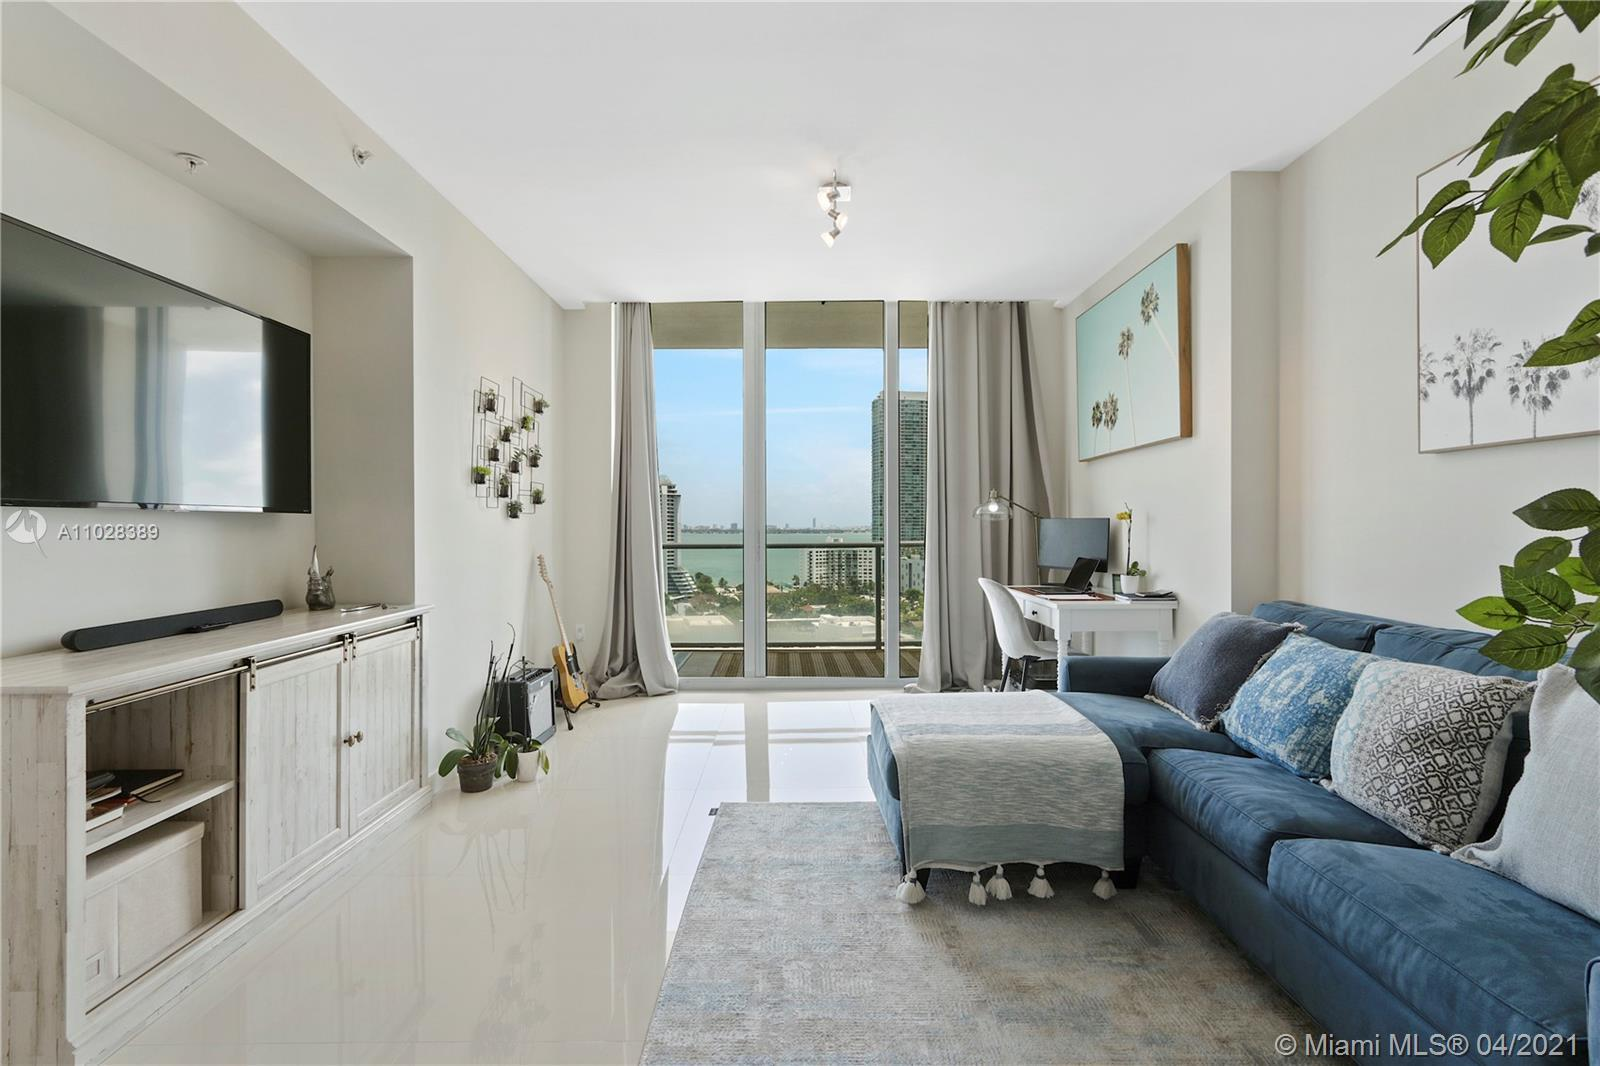 Beautiful Bay Front unit with a stunning view. Floor to ceiling windows and large glass balcony. U